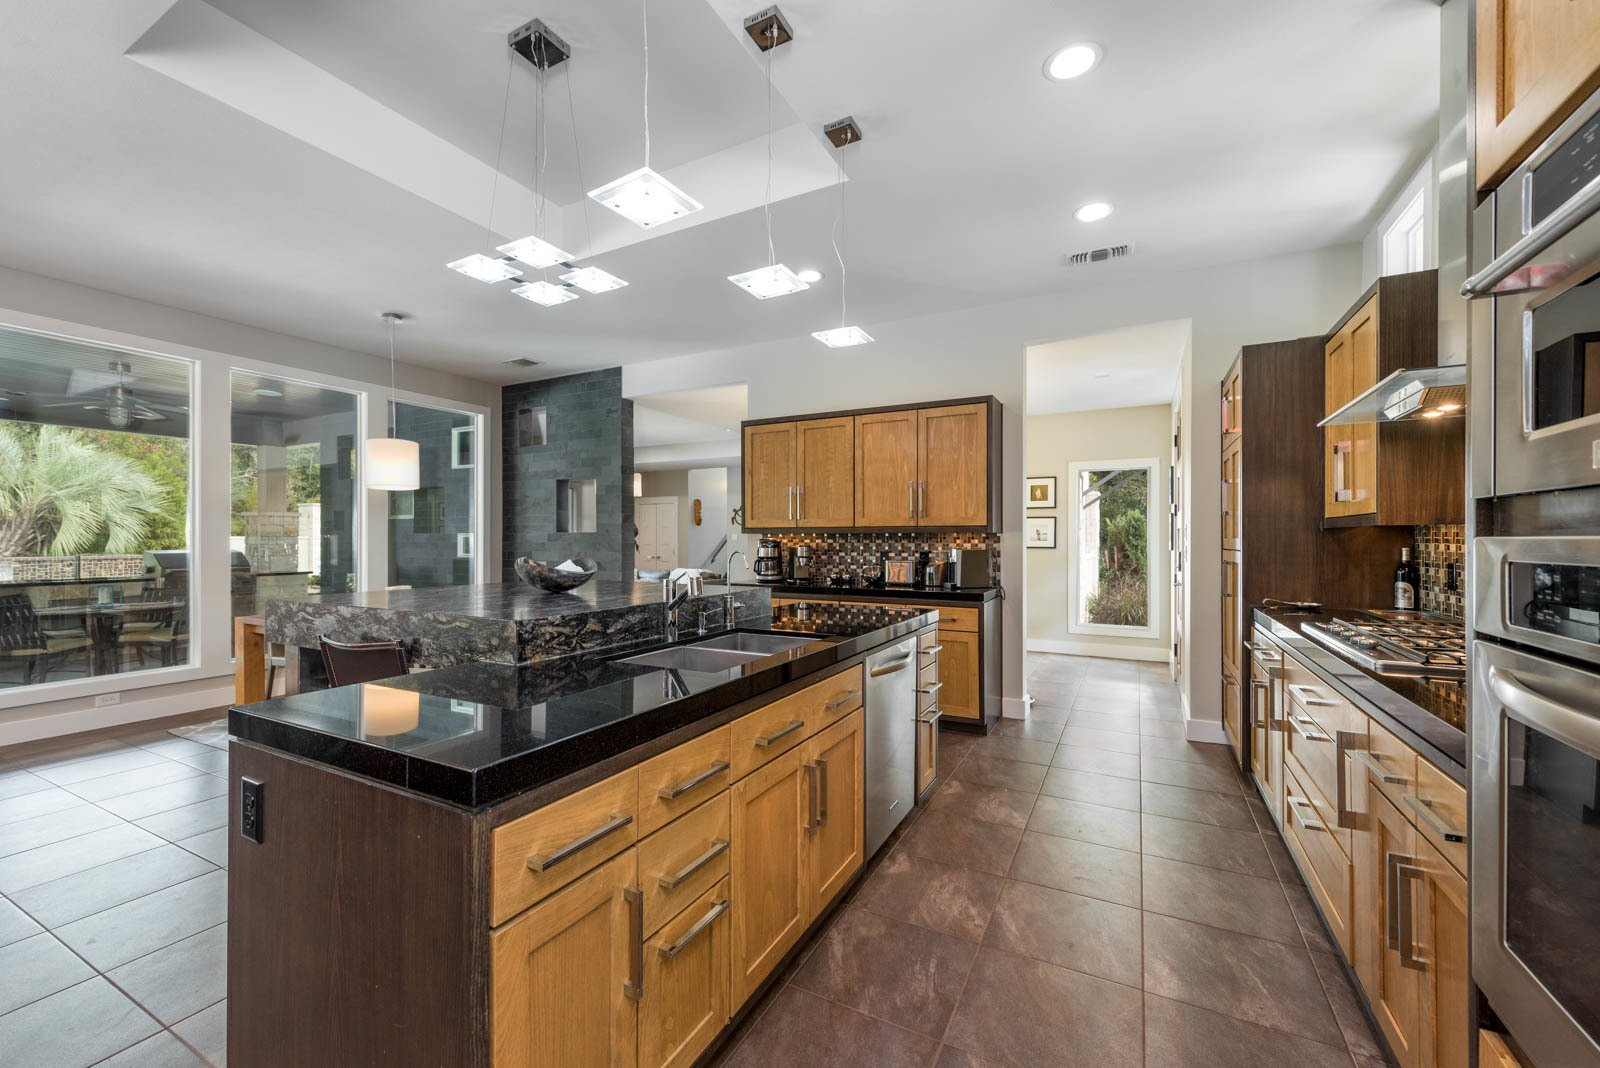 Kitchen, Porcelain Tile Floor, Wood Cabinet, Granite Counter, and Pendant Lighting Kitchen  The Carlson House